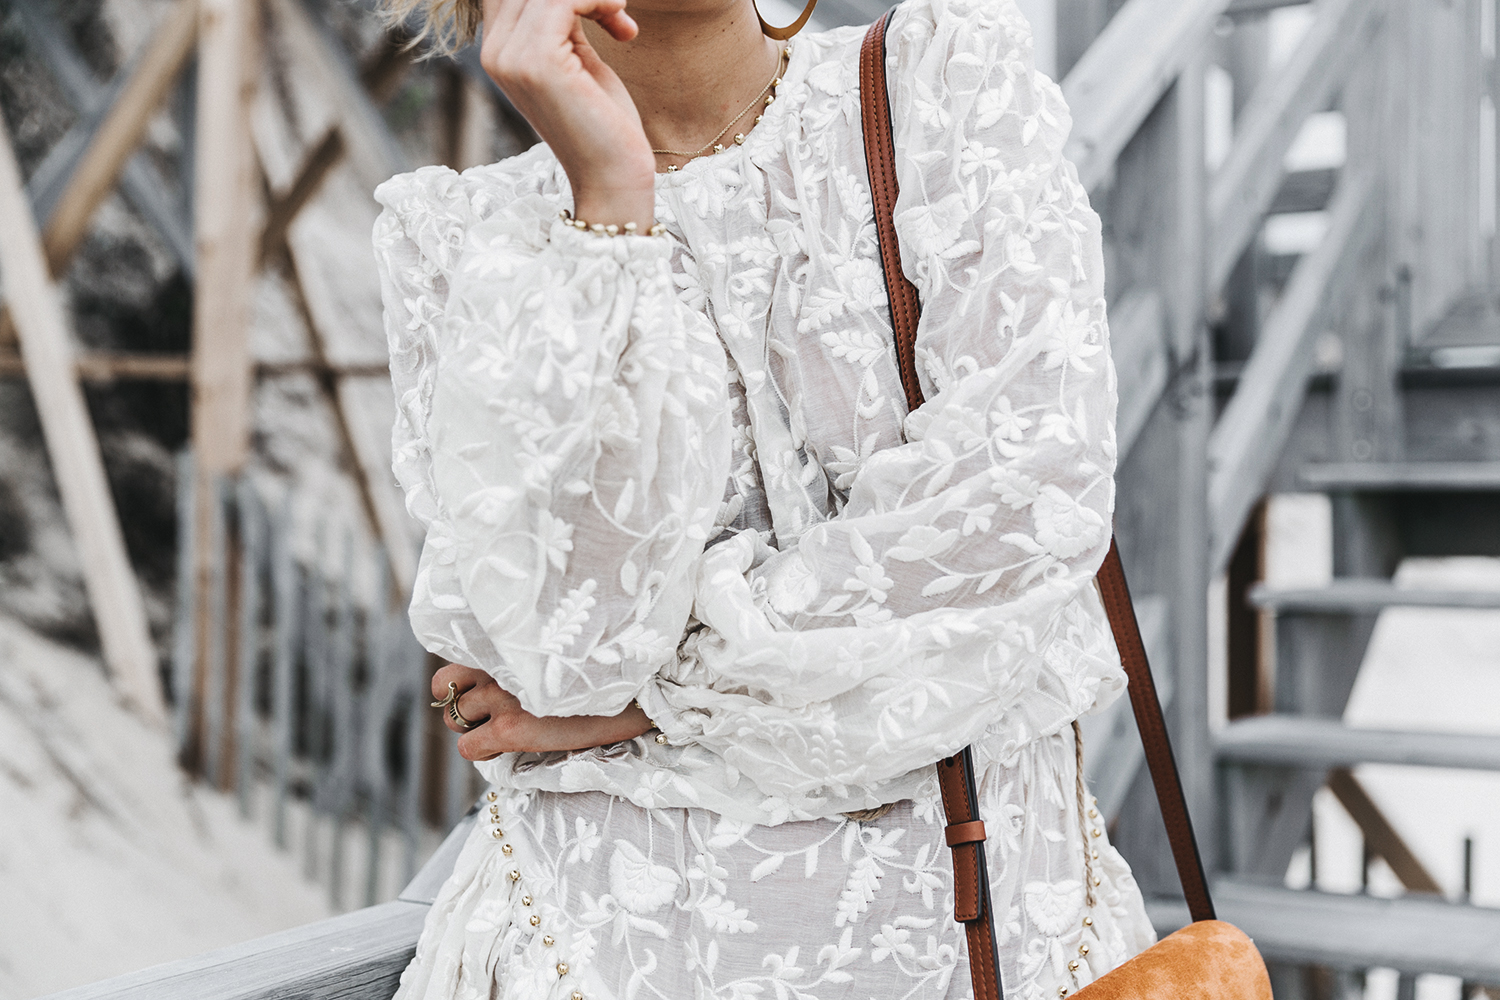 Revolve_in_The_Hamptons-Zimmermann-Embroidered_Dress-WHite_Dress-Chloe_Fay_Bag-Chloe_Wedges-Outfit-101